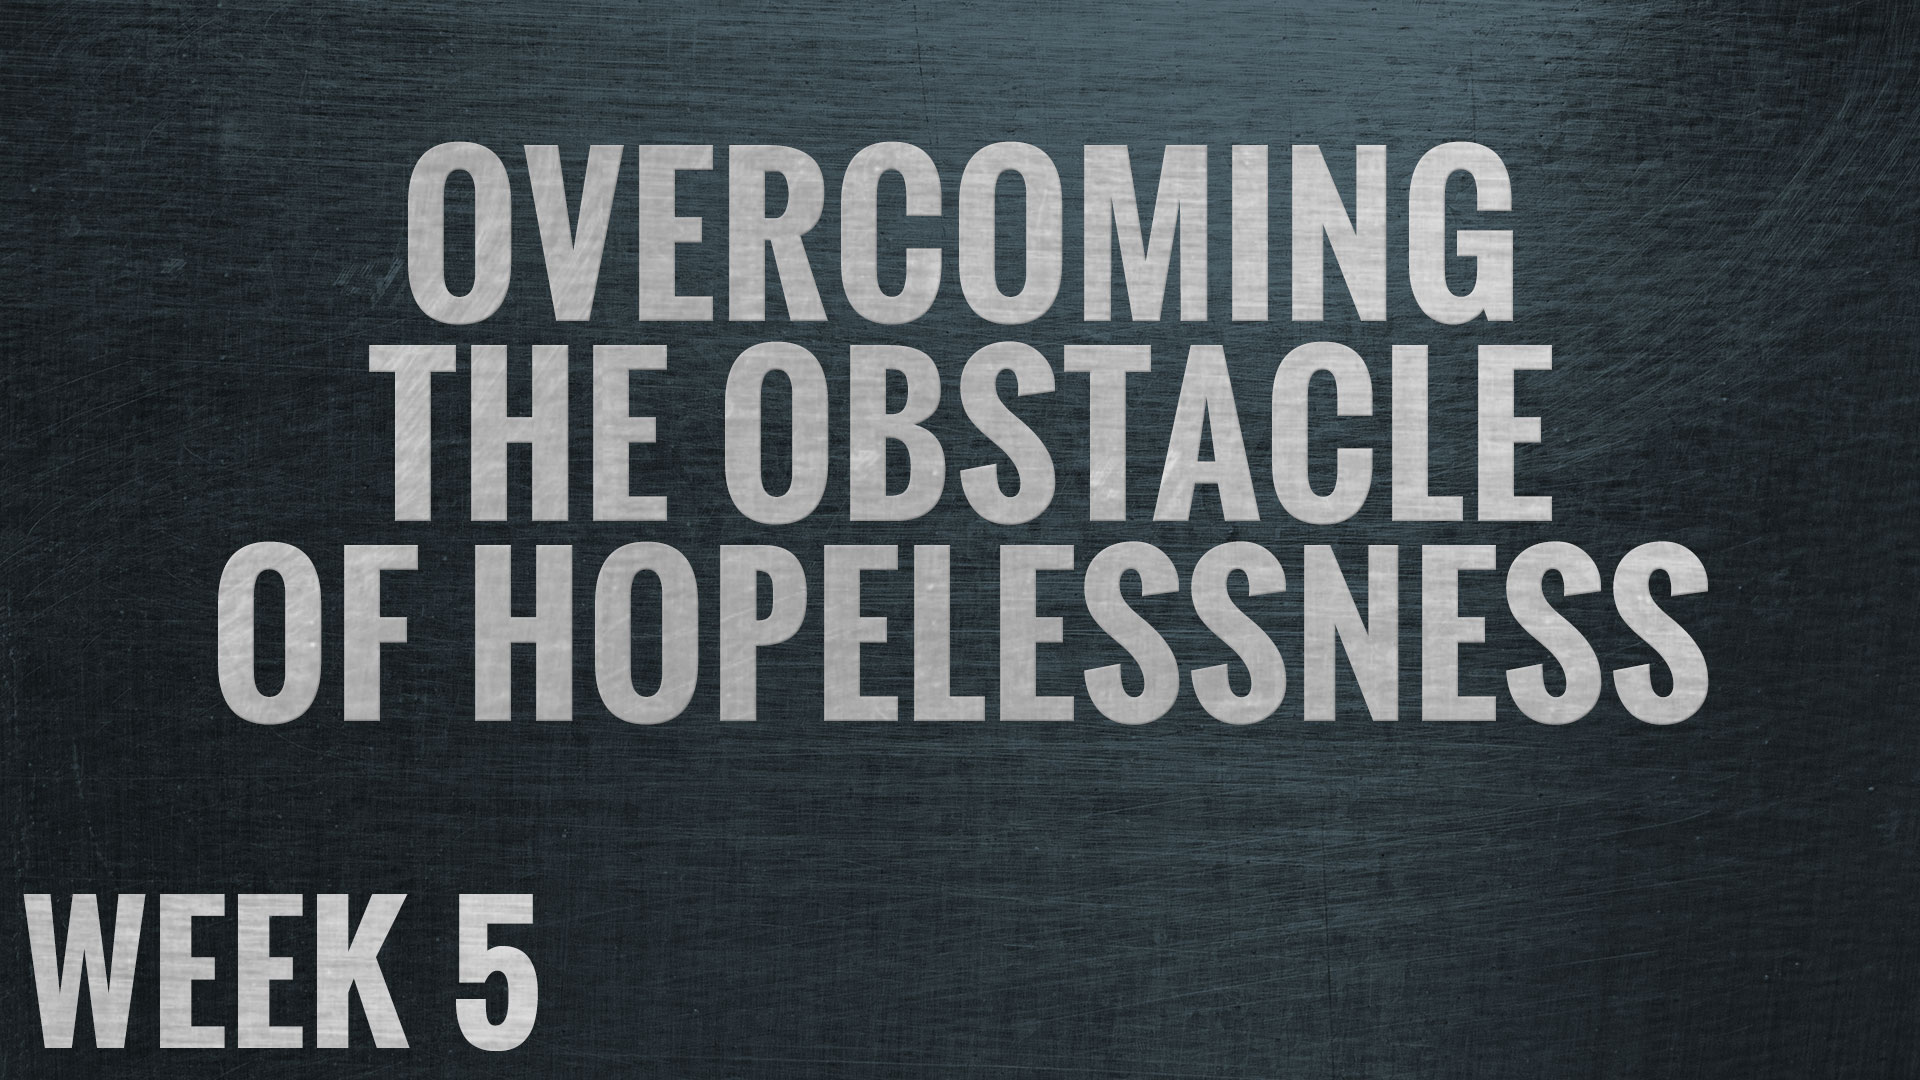 Overcoming The Obstacle Of Hopelessness Image